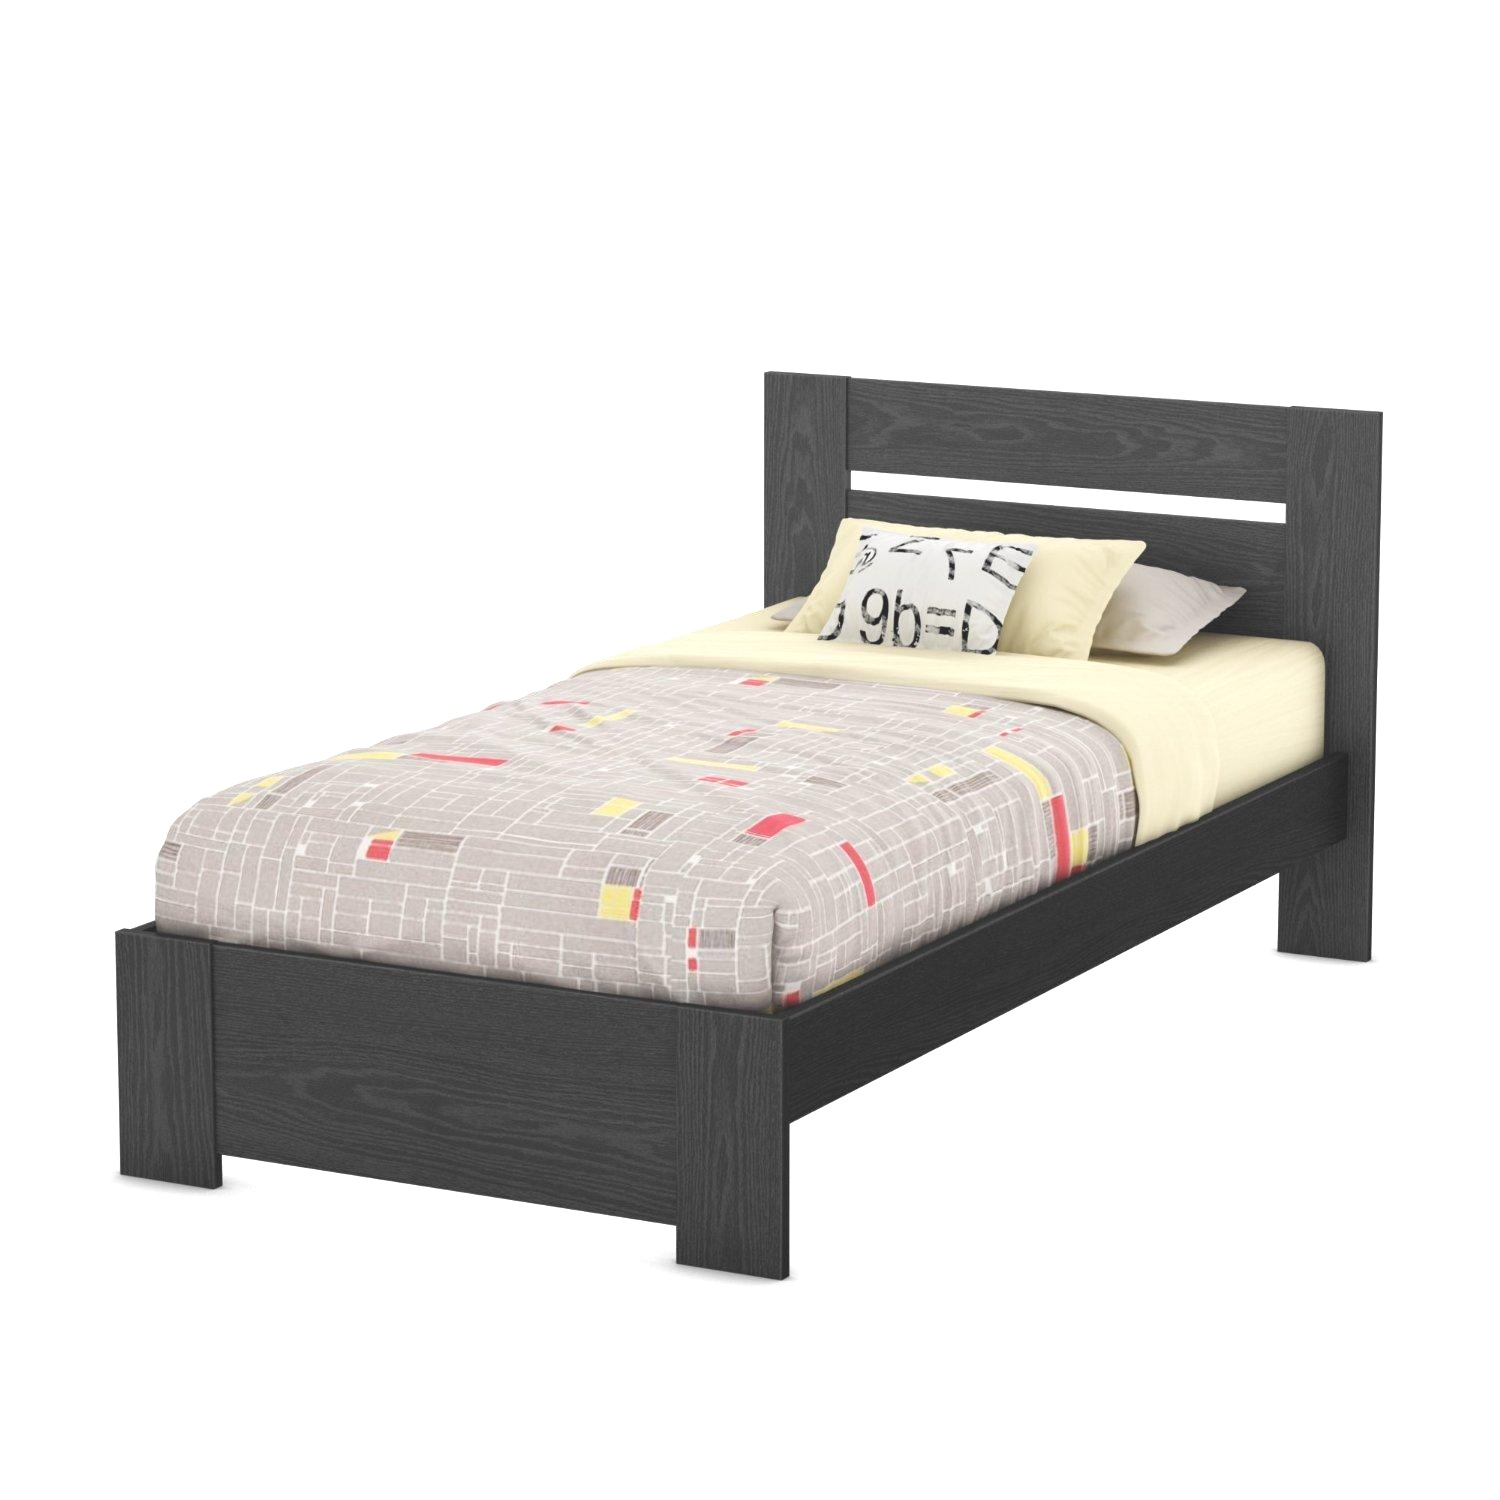 Twin Bed Frames For Sale | Bed Frames Wallpaper : Hi-Res Wood Platform Bed Twin Beds For Sale ..